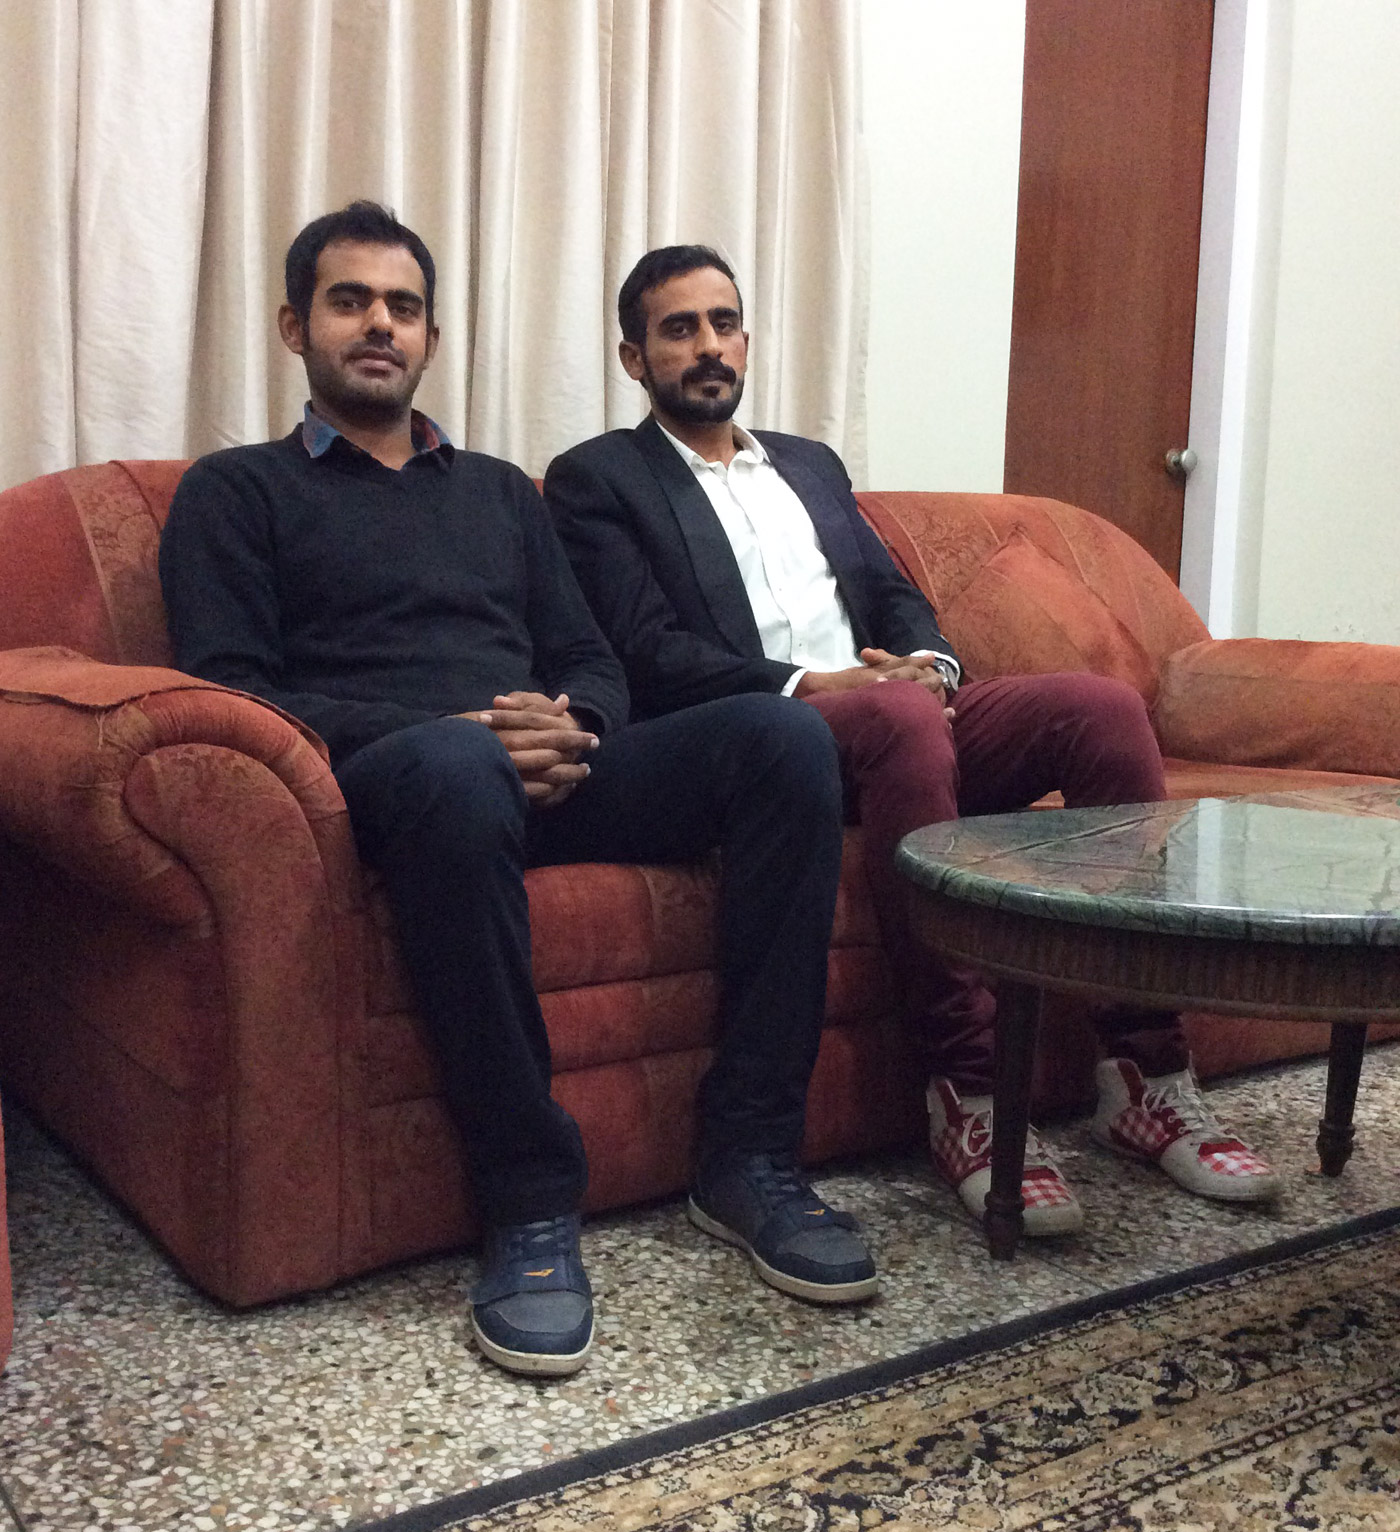 Faisal bin Mubashir (left) and his brother Rafay Ahmed have come disappointingly close to being selected for top-level teams in Pakistan